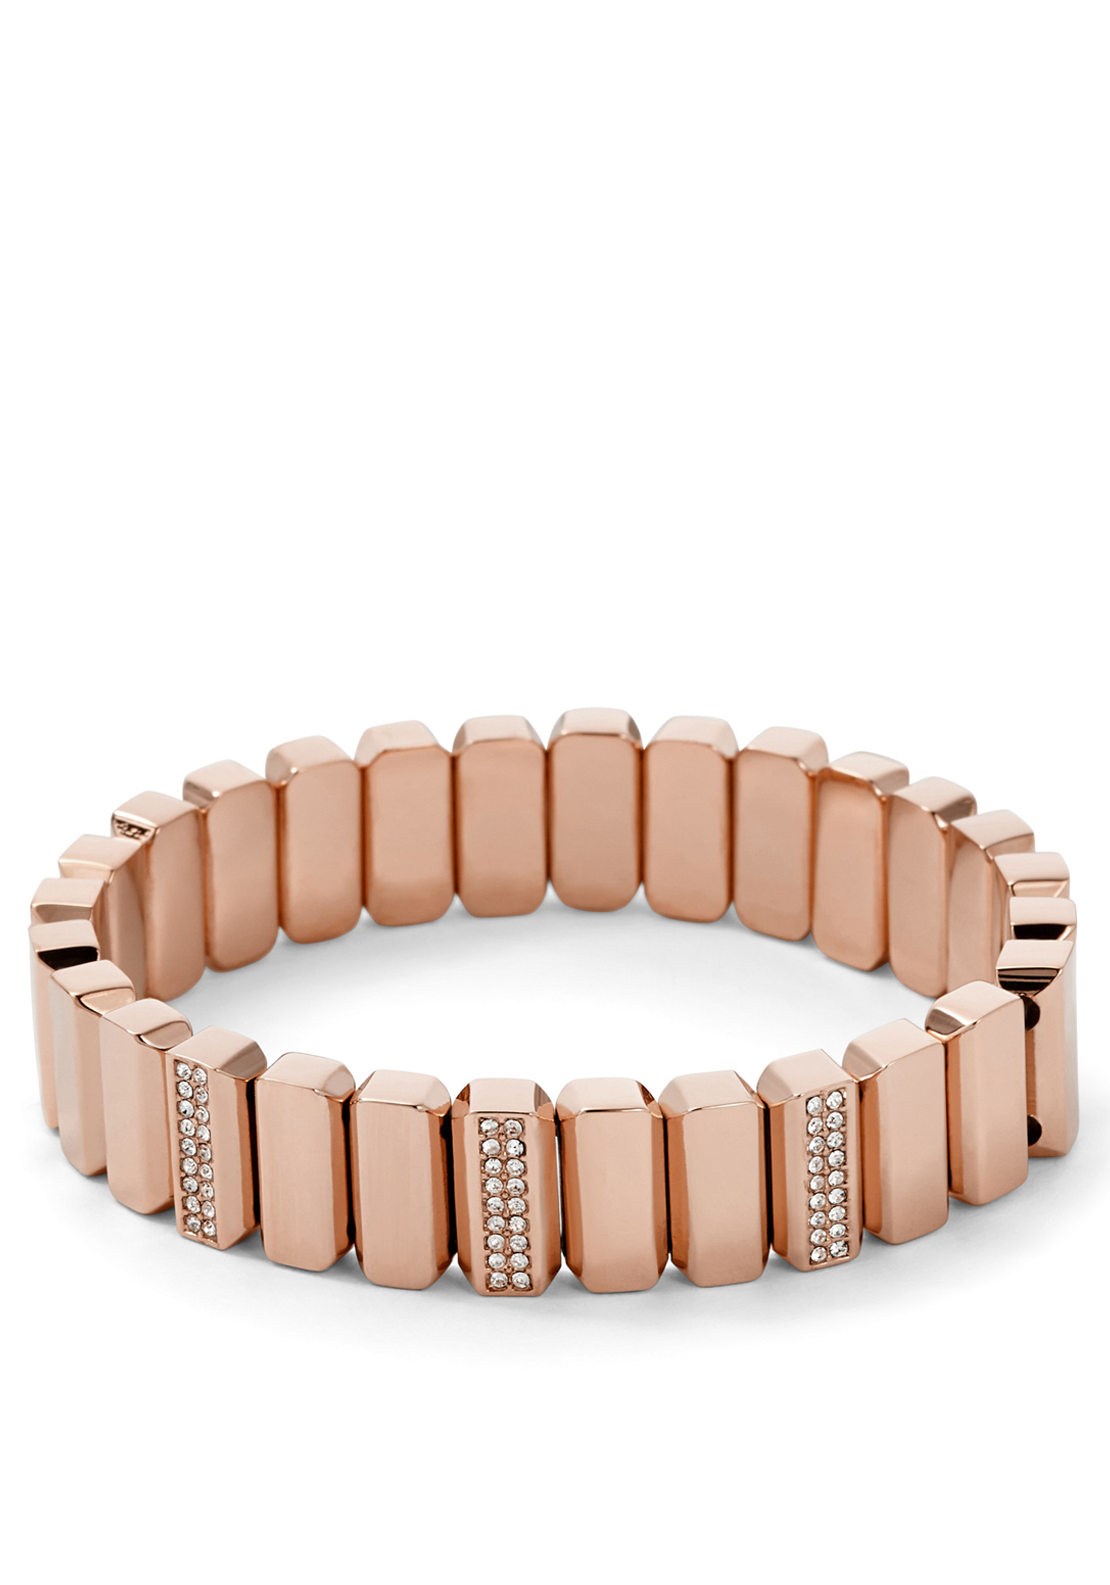 Fossil Womens Metal Bead Stretch Bracelet, Rose Gold